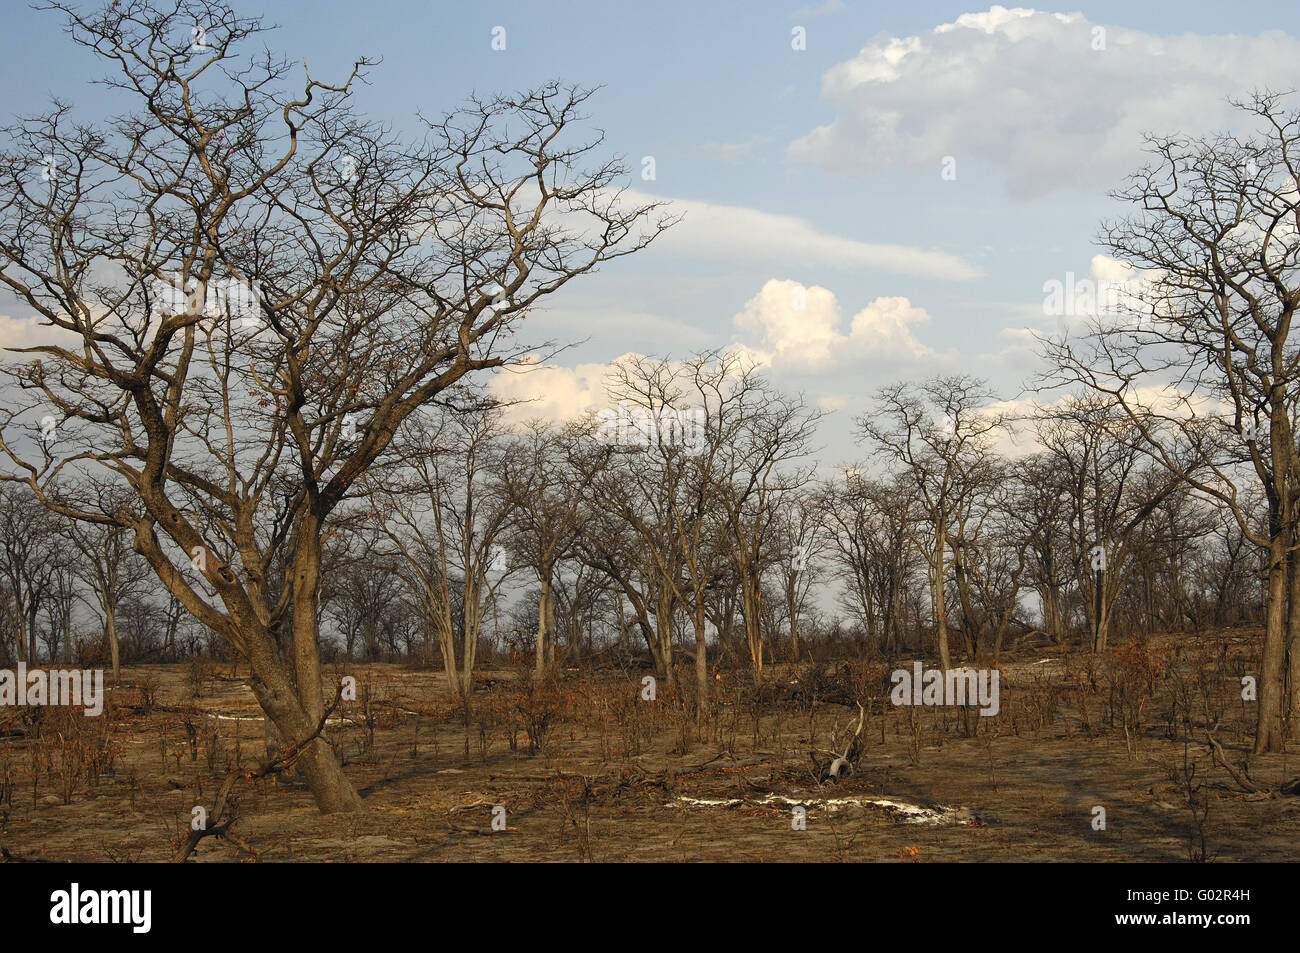 Forest of defoliated semi-deciduous Leadwood trees - Stock Image